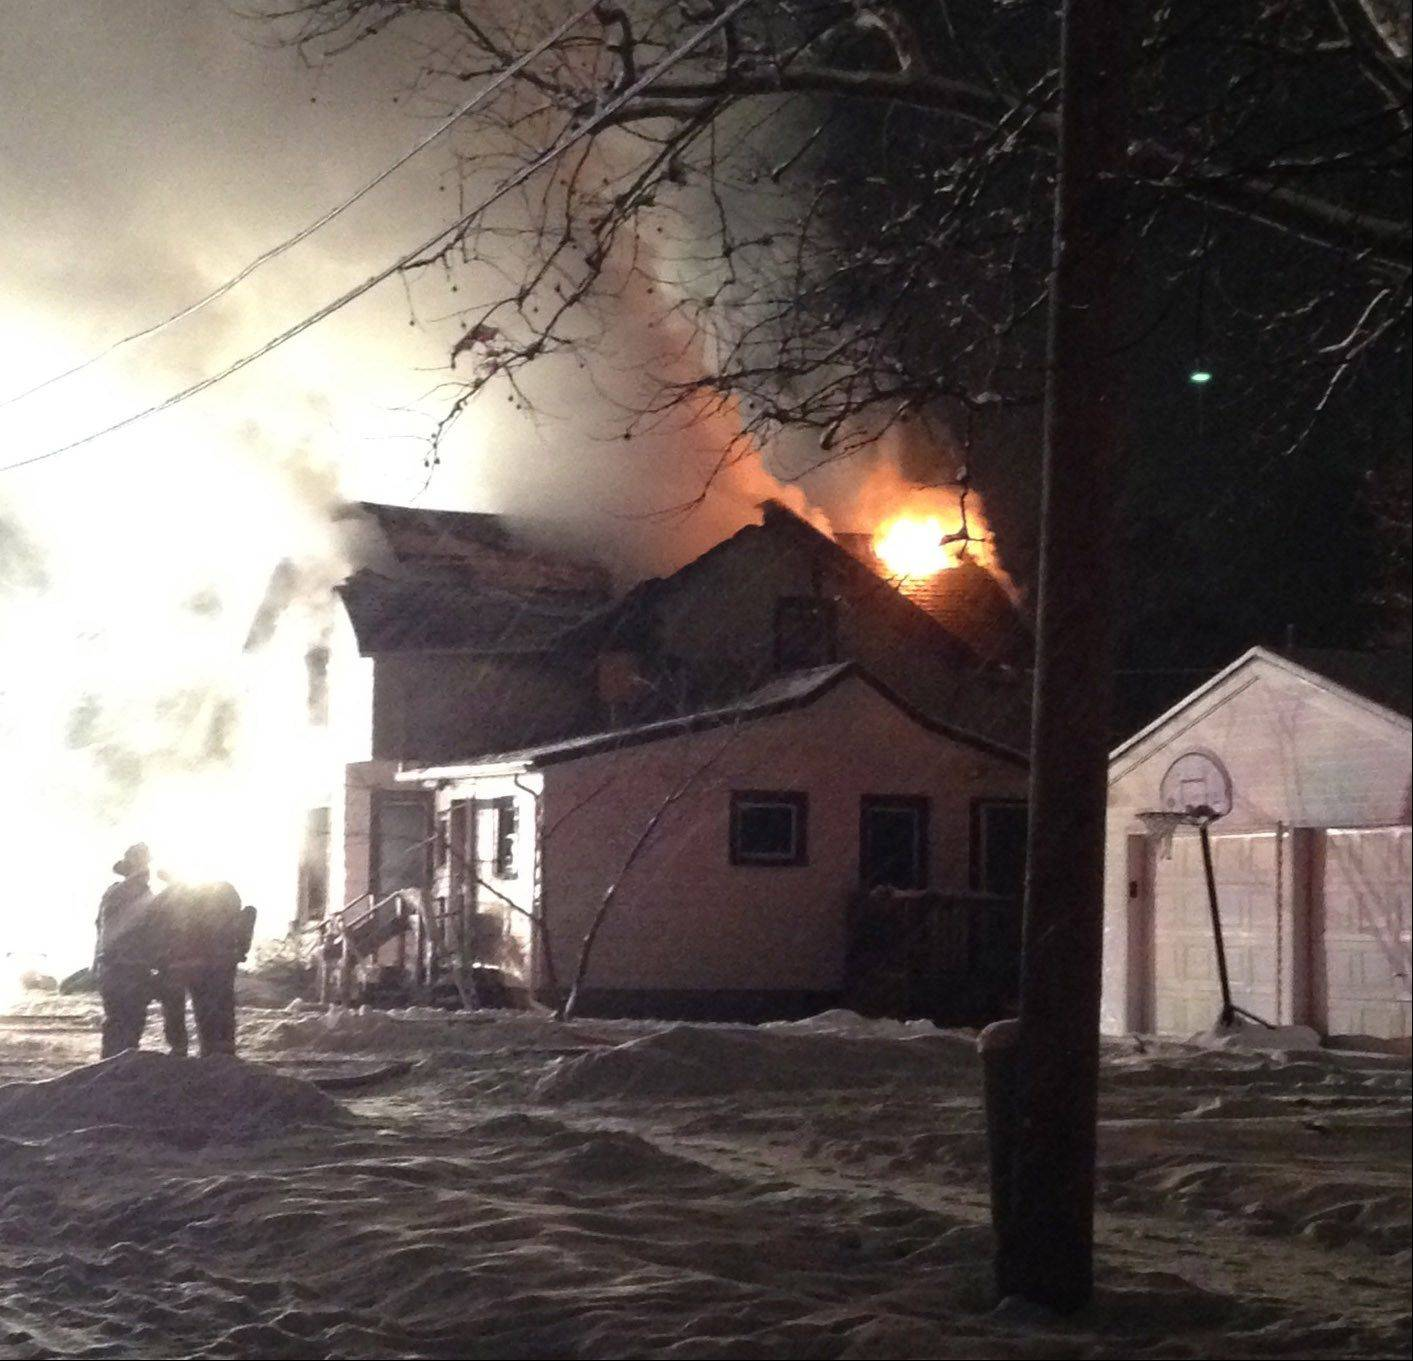 A New Year�s Eve fire in Carpentersville left a family of five homeless. While the cause remains under investigation, the Carpentersville Fire Department, a local church and charity are working to get the family back on their feet by holding a donation drive.